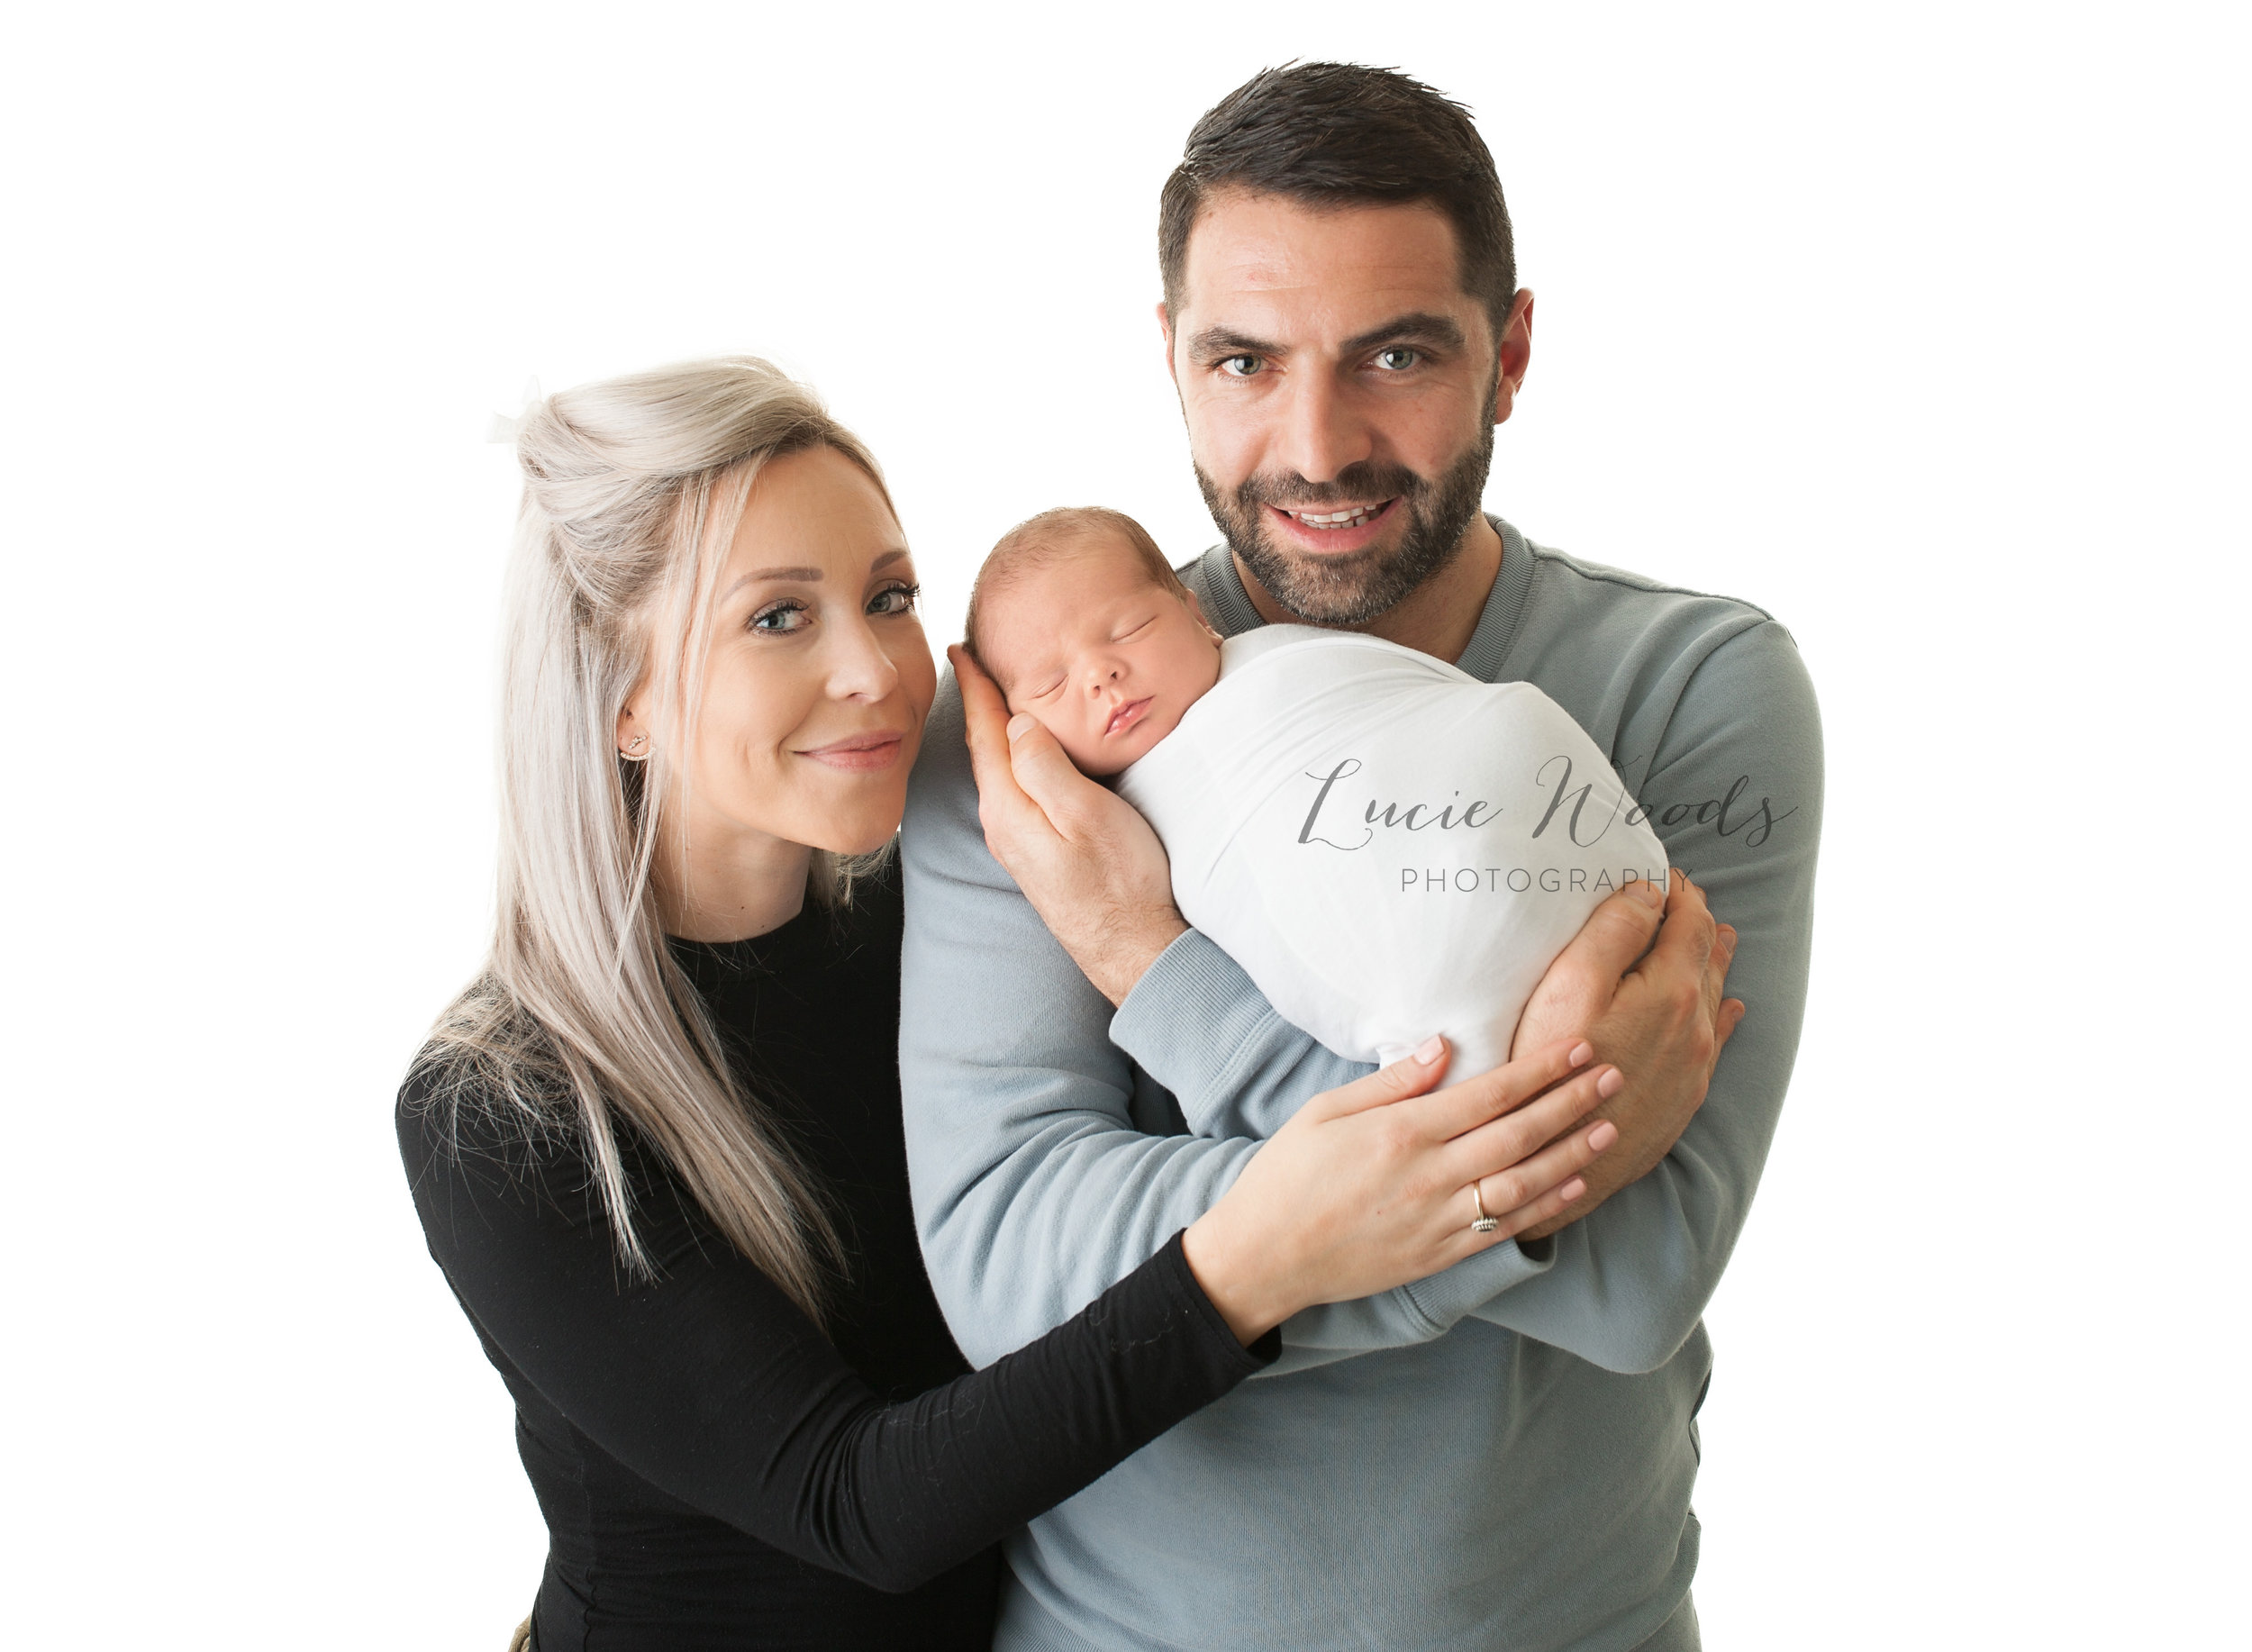 Newborn photographer baby photography Manchester Lancashire Rawtenstall Lucie Woods Photography Altrincham Hale Ramsbottom cute baby photos photo cake smash milestones